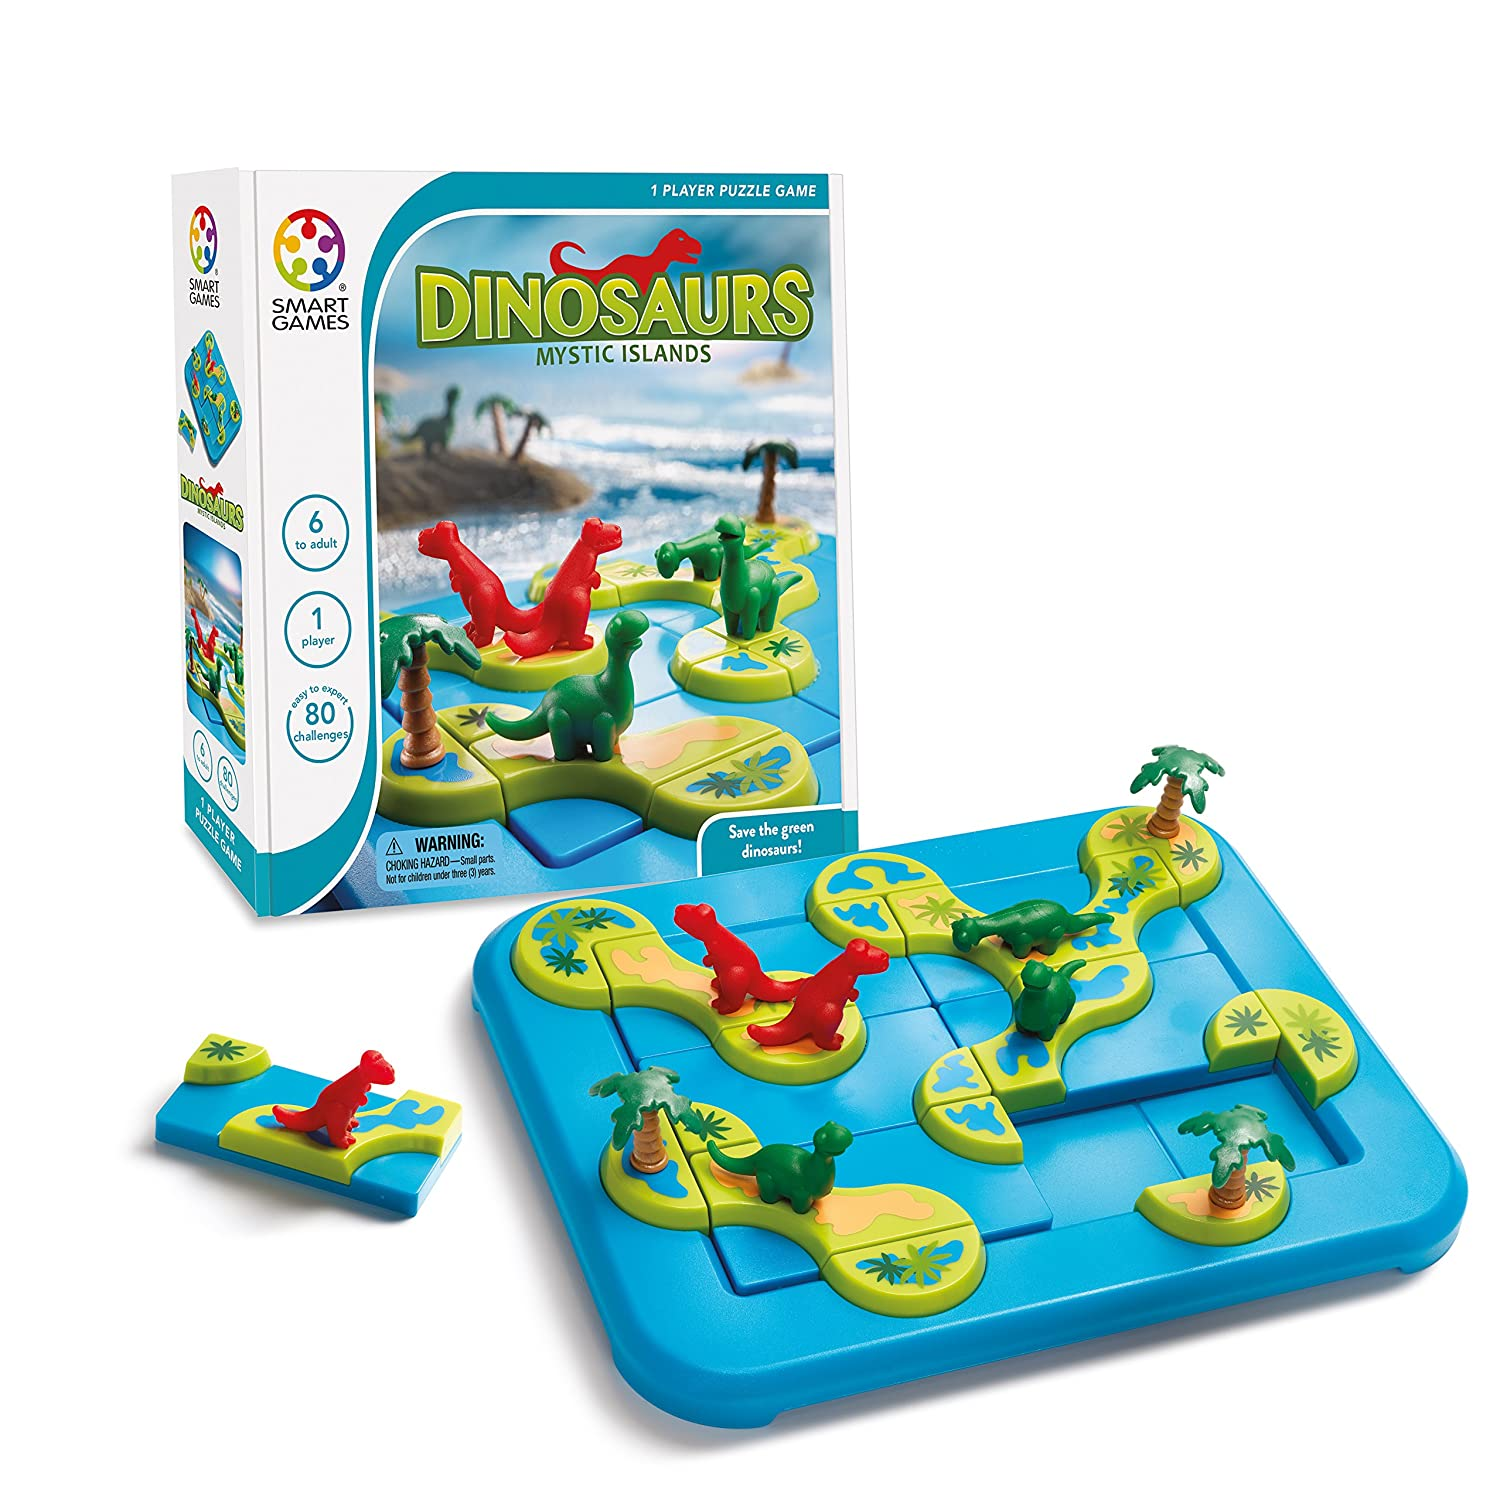 Amazon SmartGames Dinosaurs Mystic Islands Toys & Games